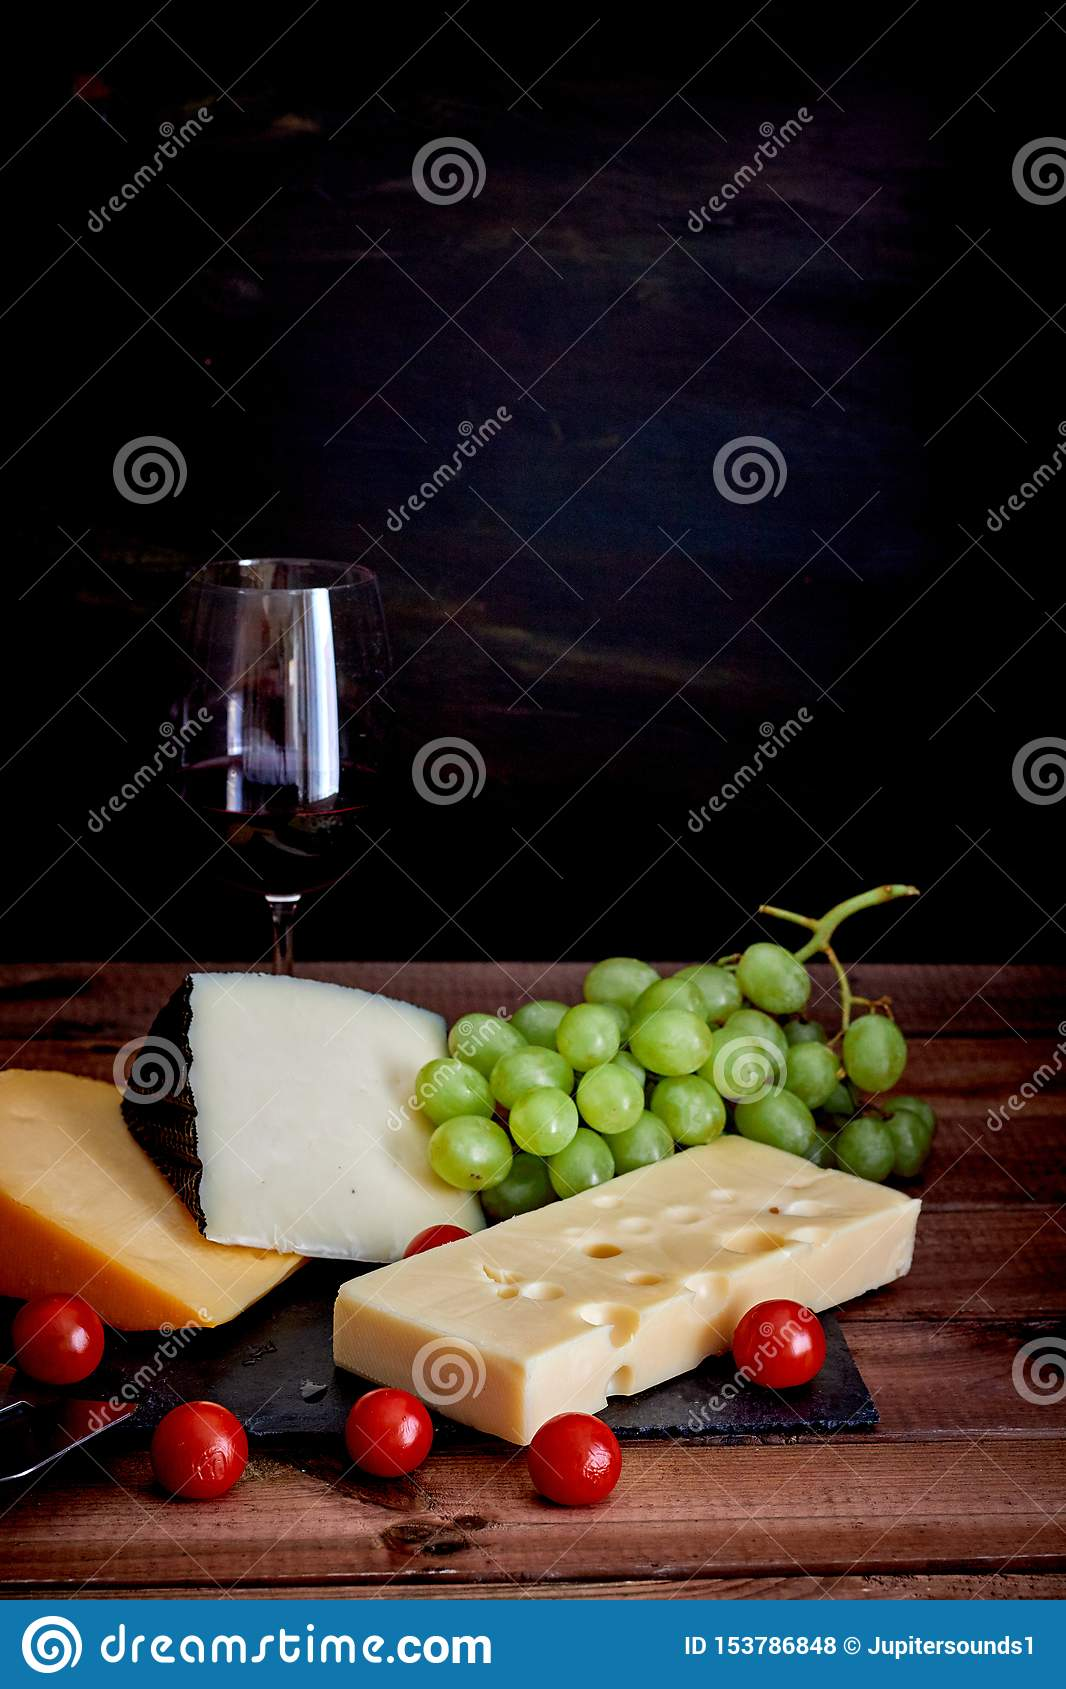 Table with different cheeses and wine glass on dark background